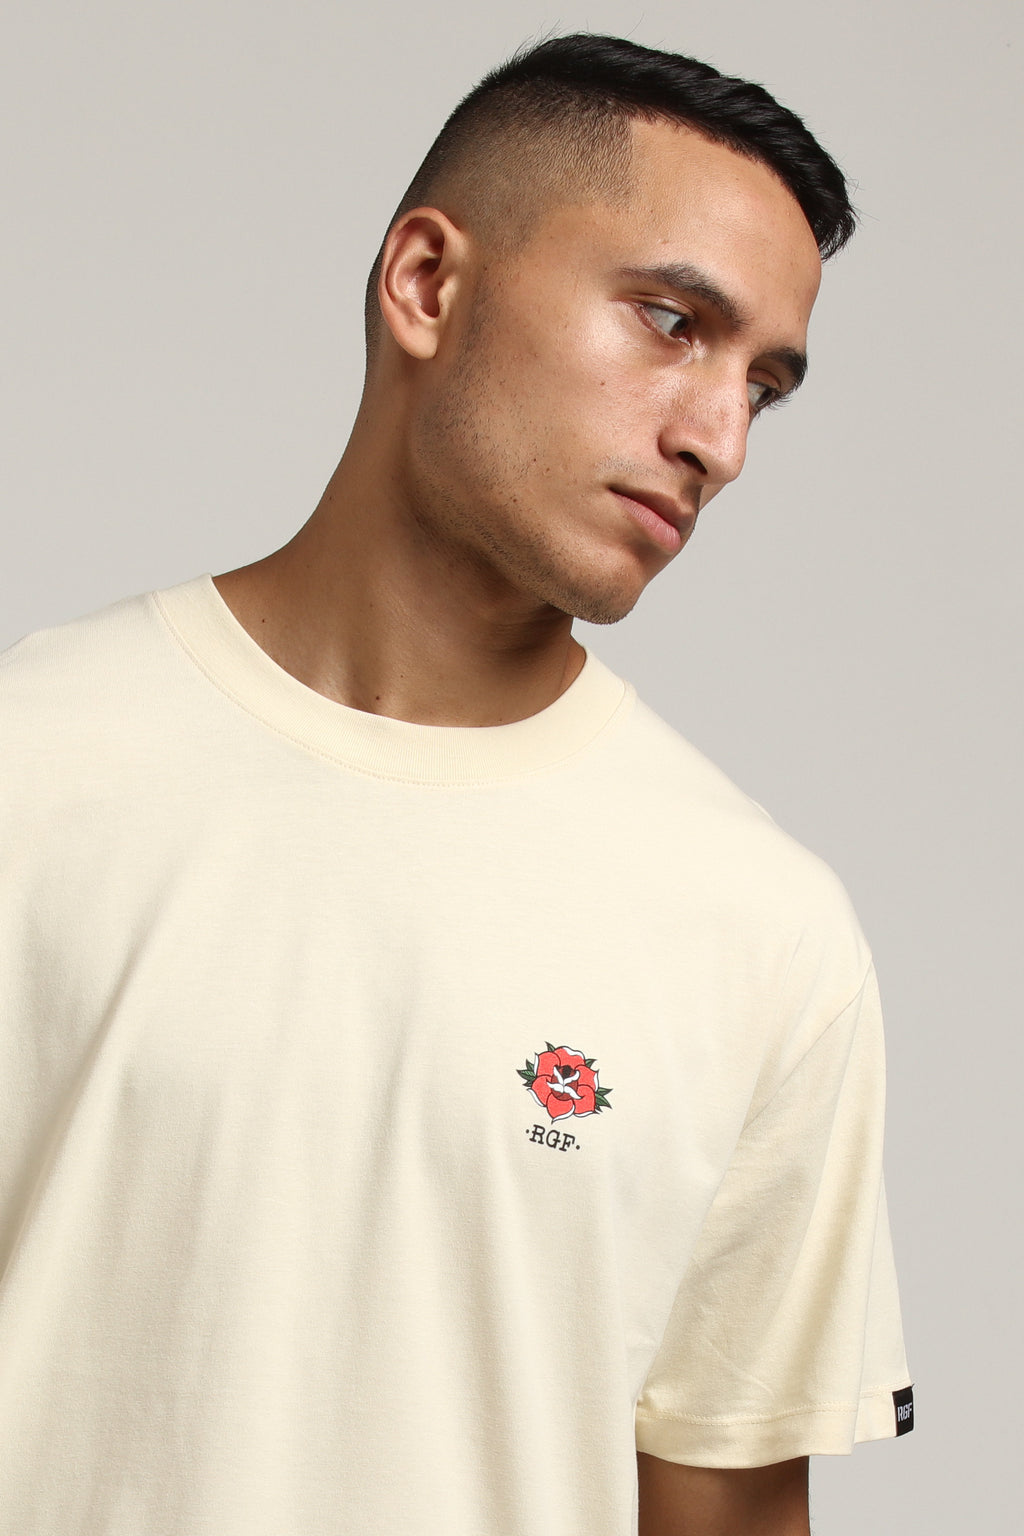 FULL BLOOM SS TEE - Cream